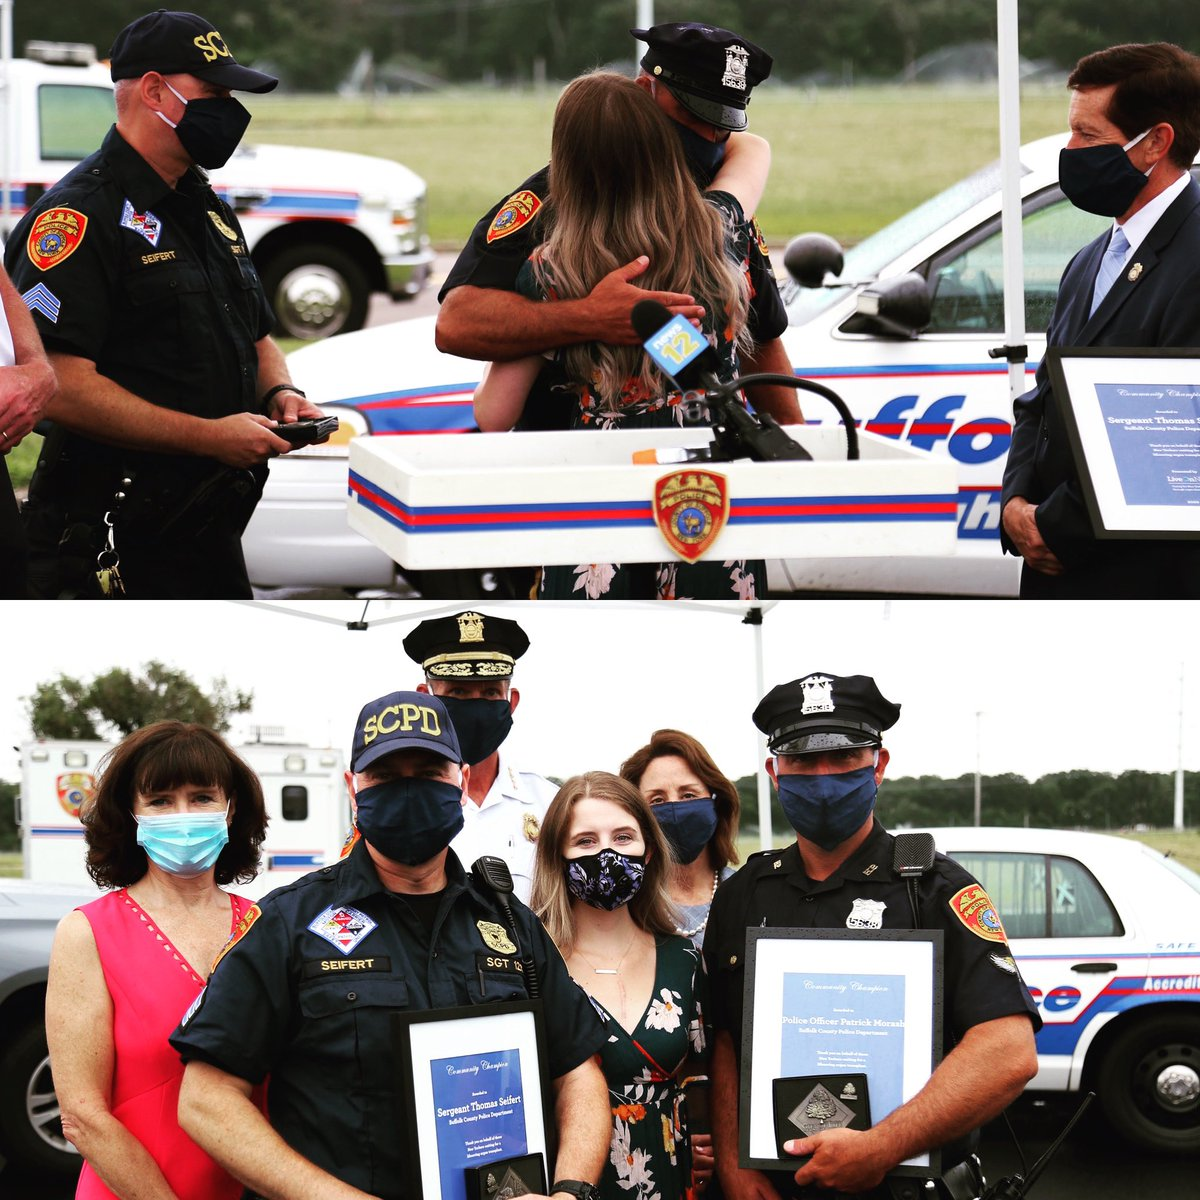 #ThankfulThursday moment as #LongIsland Resident Angie Tempio, who received a life-saving heart transplant 1 year ago, joined @LiveOnNewYork to reunite with the officers who helped save her life when they assisted in bringing her to the hospital #organdonation #giftoflifepic.twitter.com/zSESh8VOMa